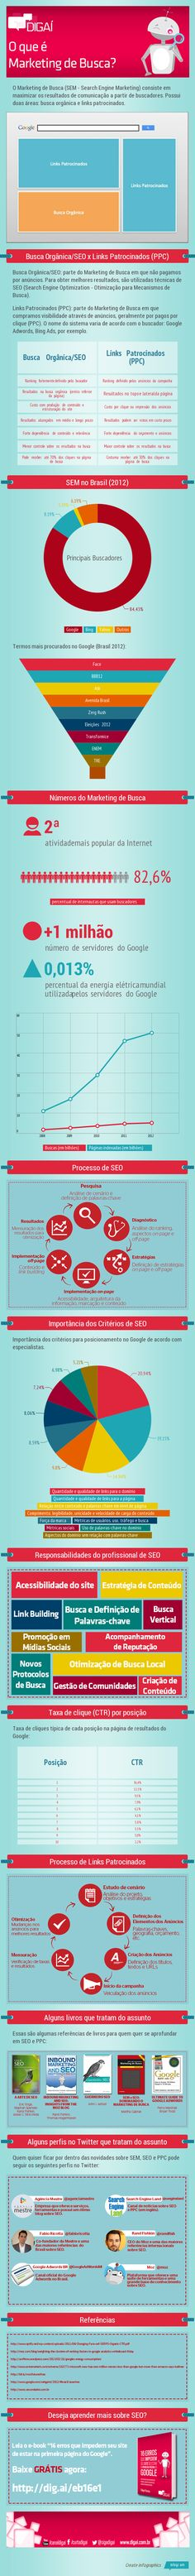 O que é Marketing de Busca? – Infográfico sobre SEM | Digaí